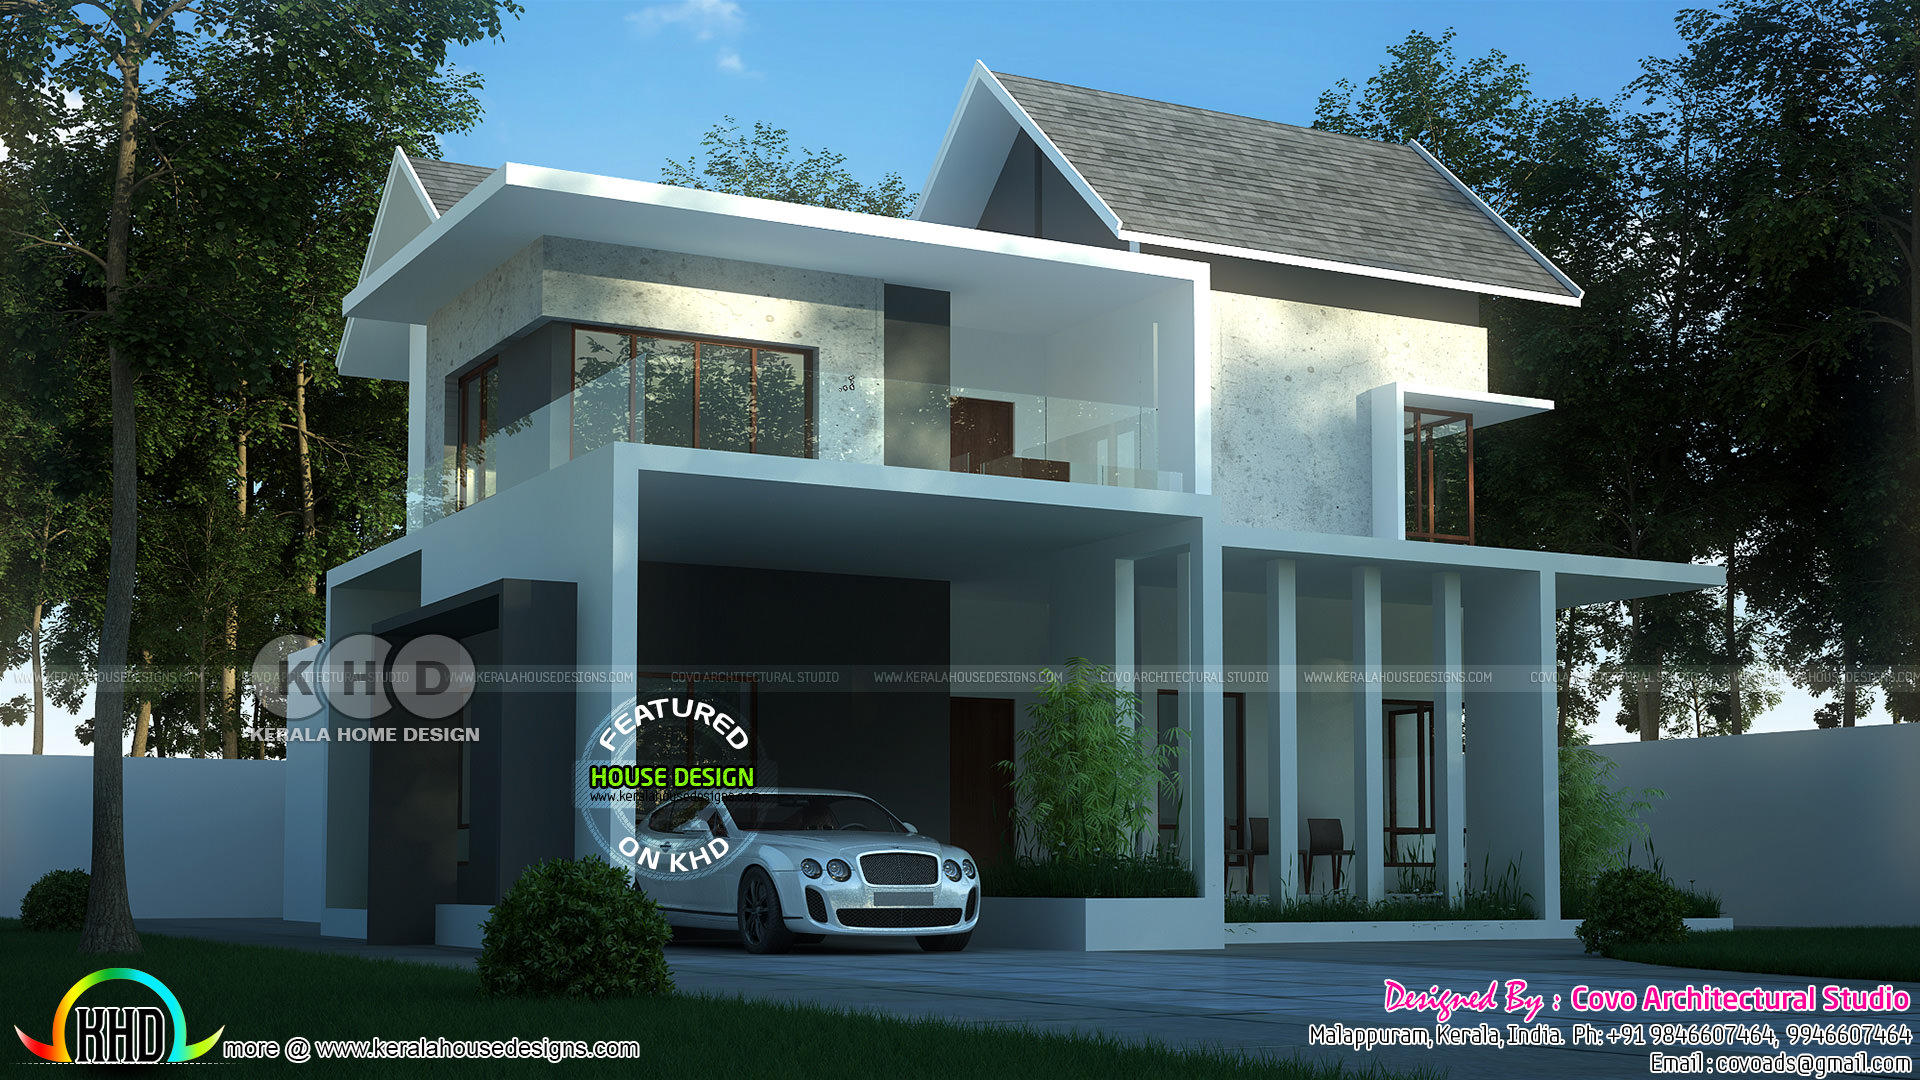 4 Bedroom Mixed Roof Contemporary Home Kerala Home